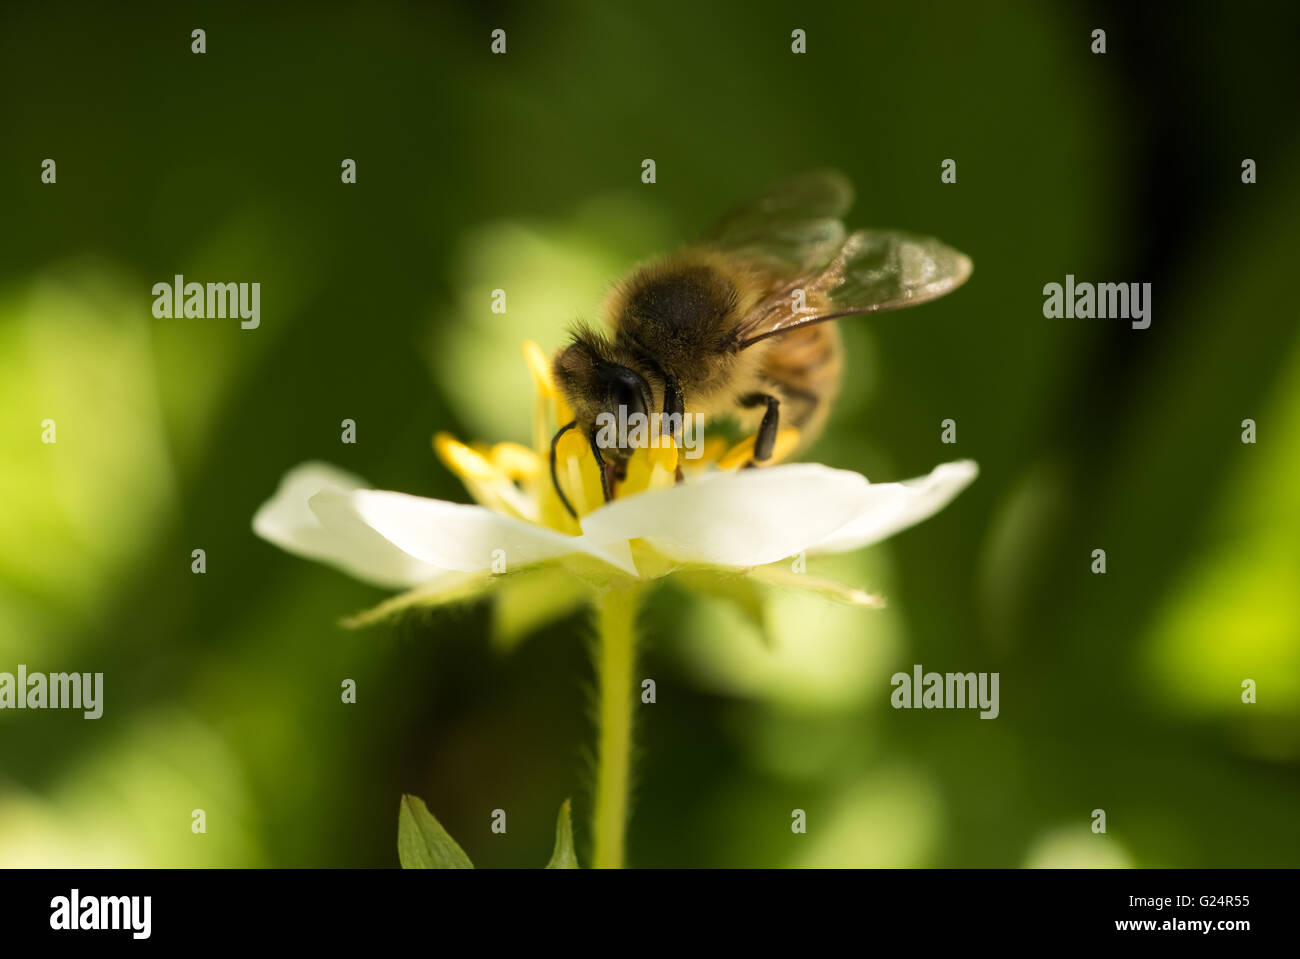 Bee at work on a strawberry flower - Stock Image